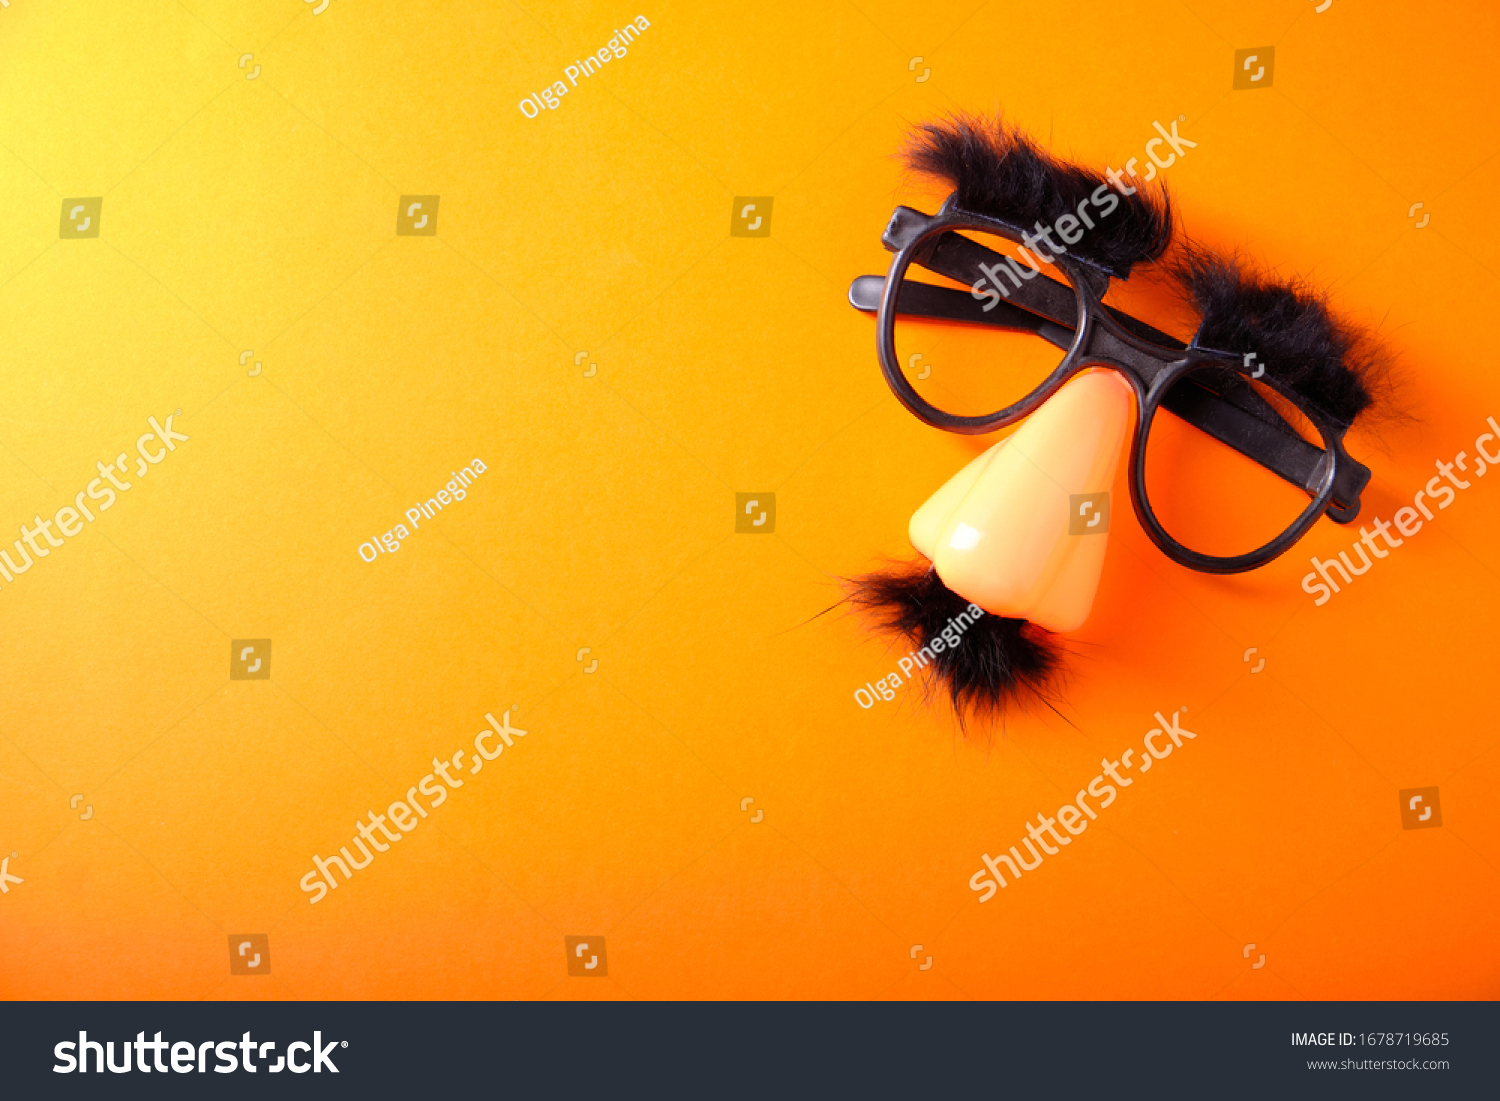 Overhead glasses, nose and mustache for April 1, April Fool's Day, on orange background #1678719685